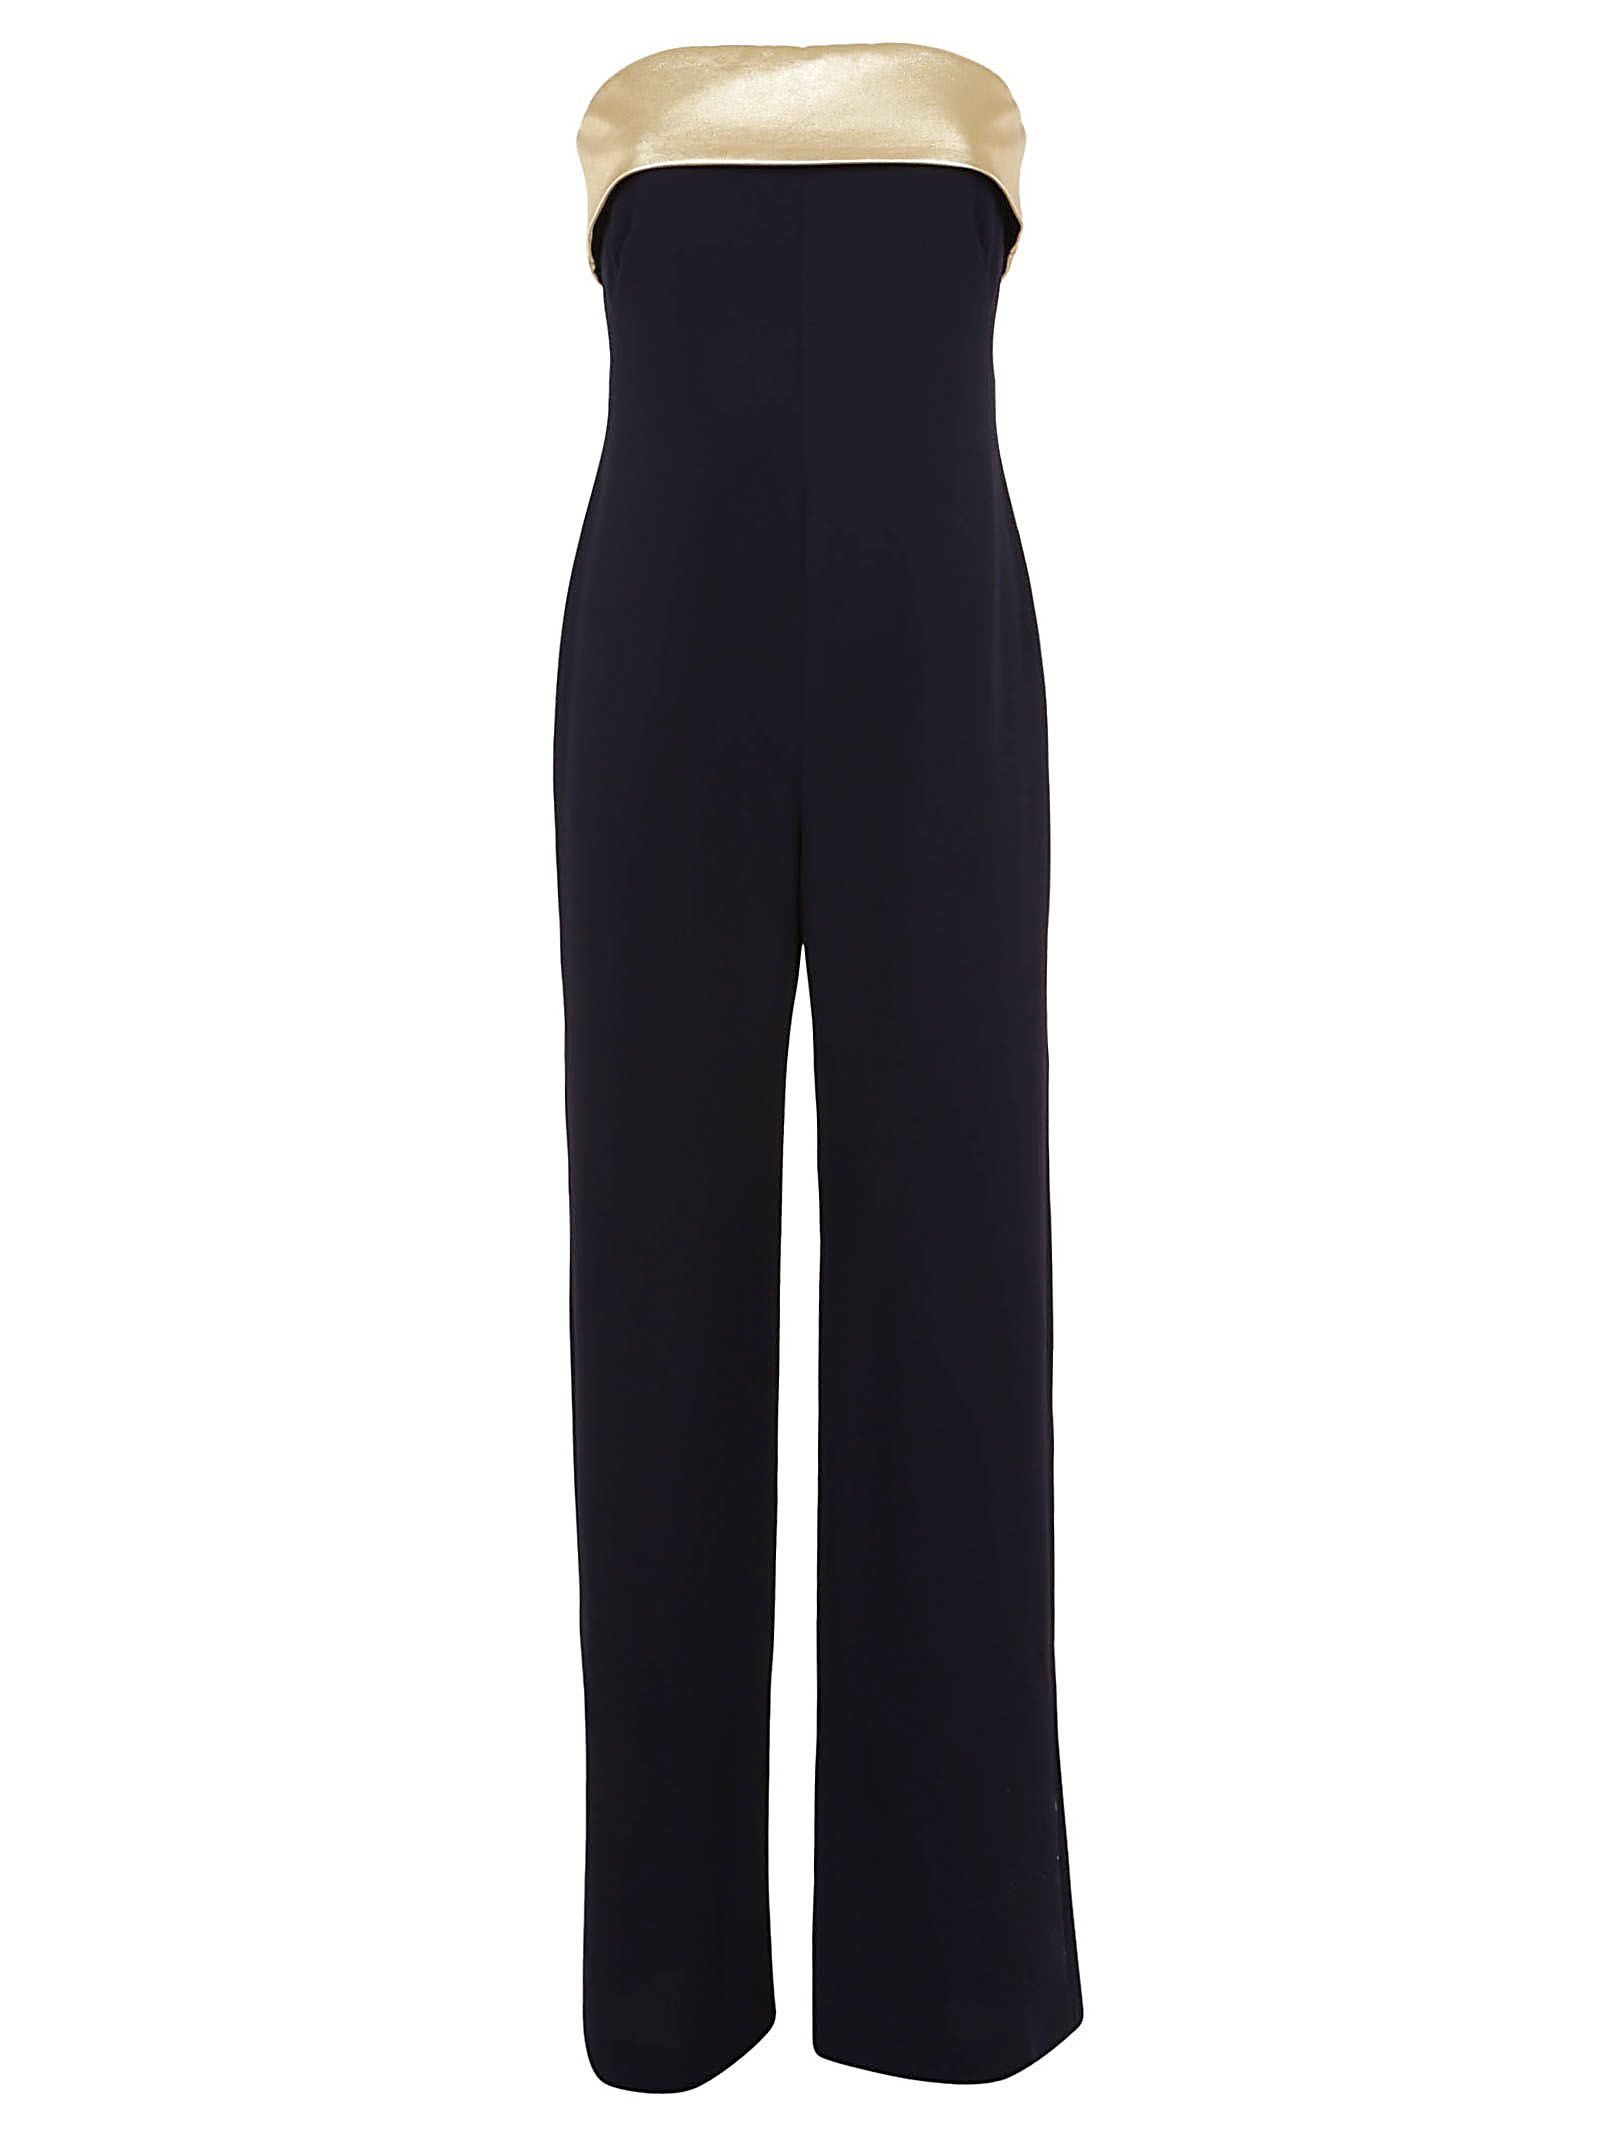 460a8c0b6d Ralph Lauren Black Label Ralph Lauren Black Label Francesca Jumpsuit ...